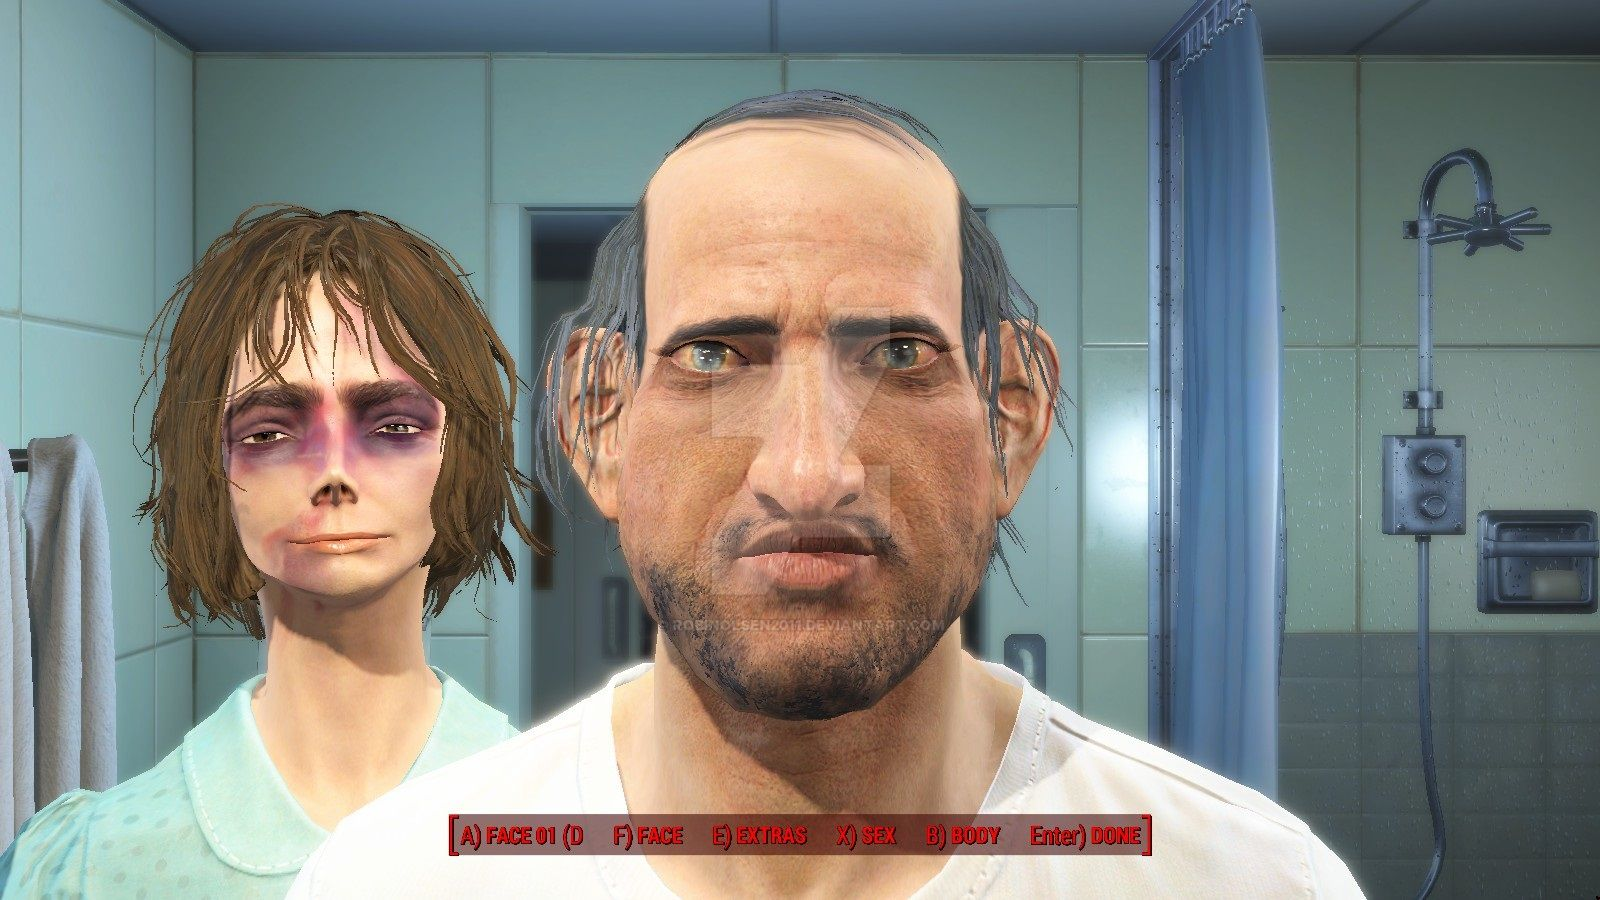 Fallout 4 - Ugly Parents by RobinOlsen2011 on DeviantArt